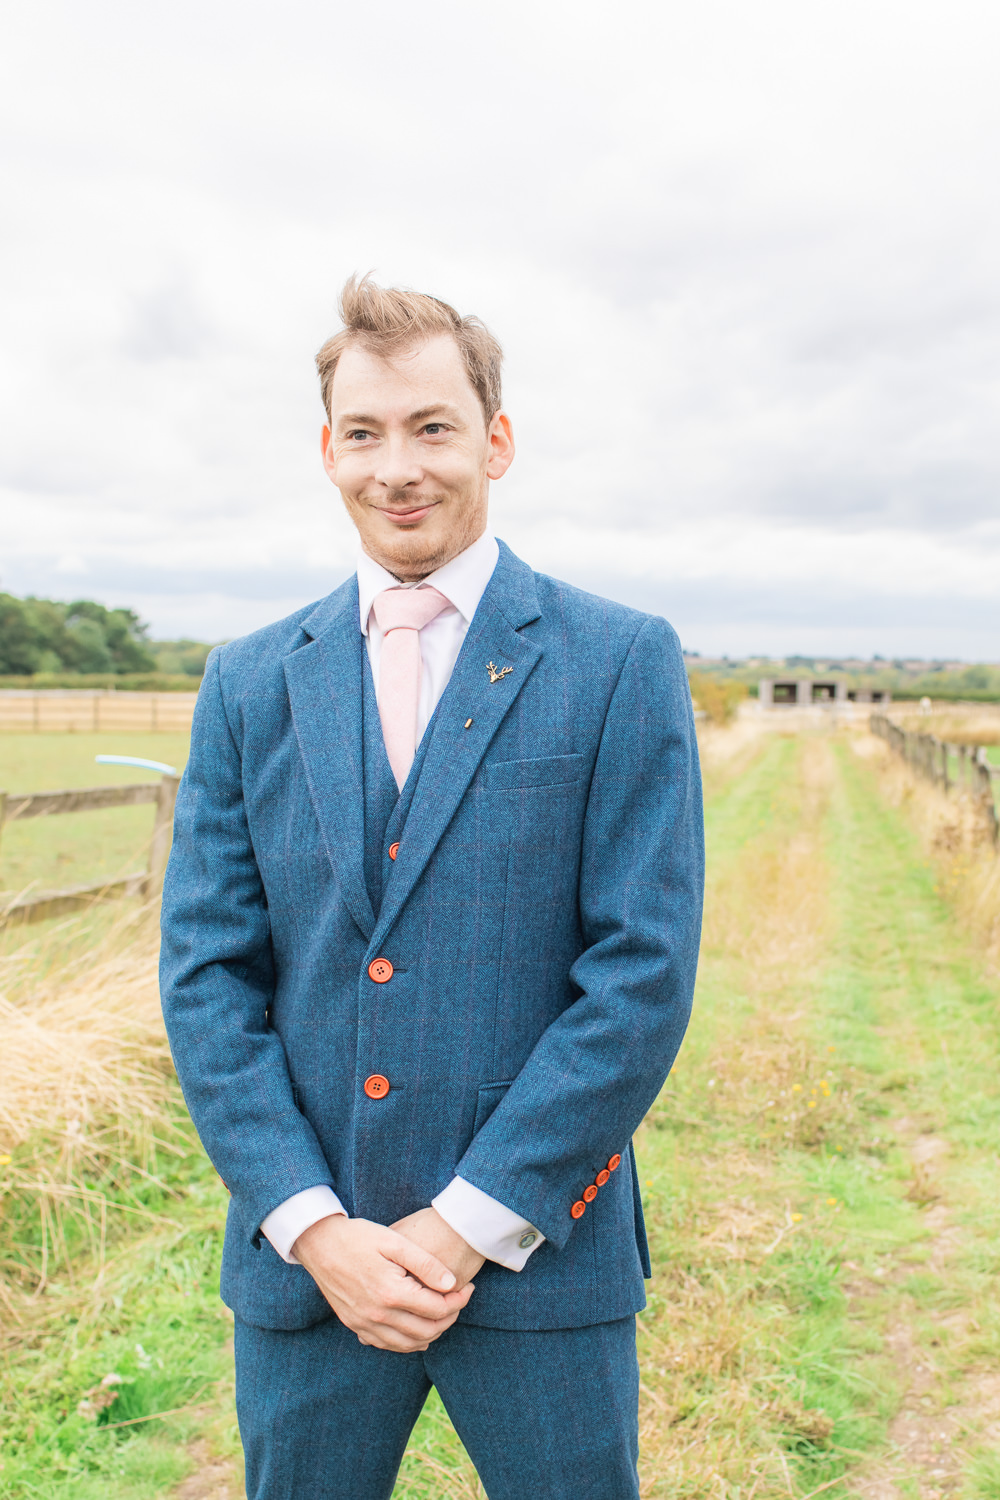 Tweed Wool Navy Blue Suit Groom Three Piece Waistcoat Bedfordshire Tipi Wedding Natalie Stevenson Photography